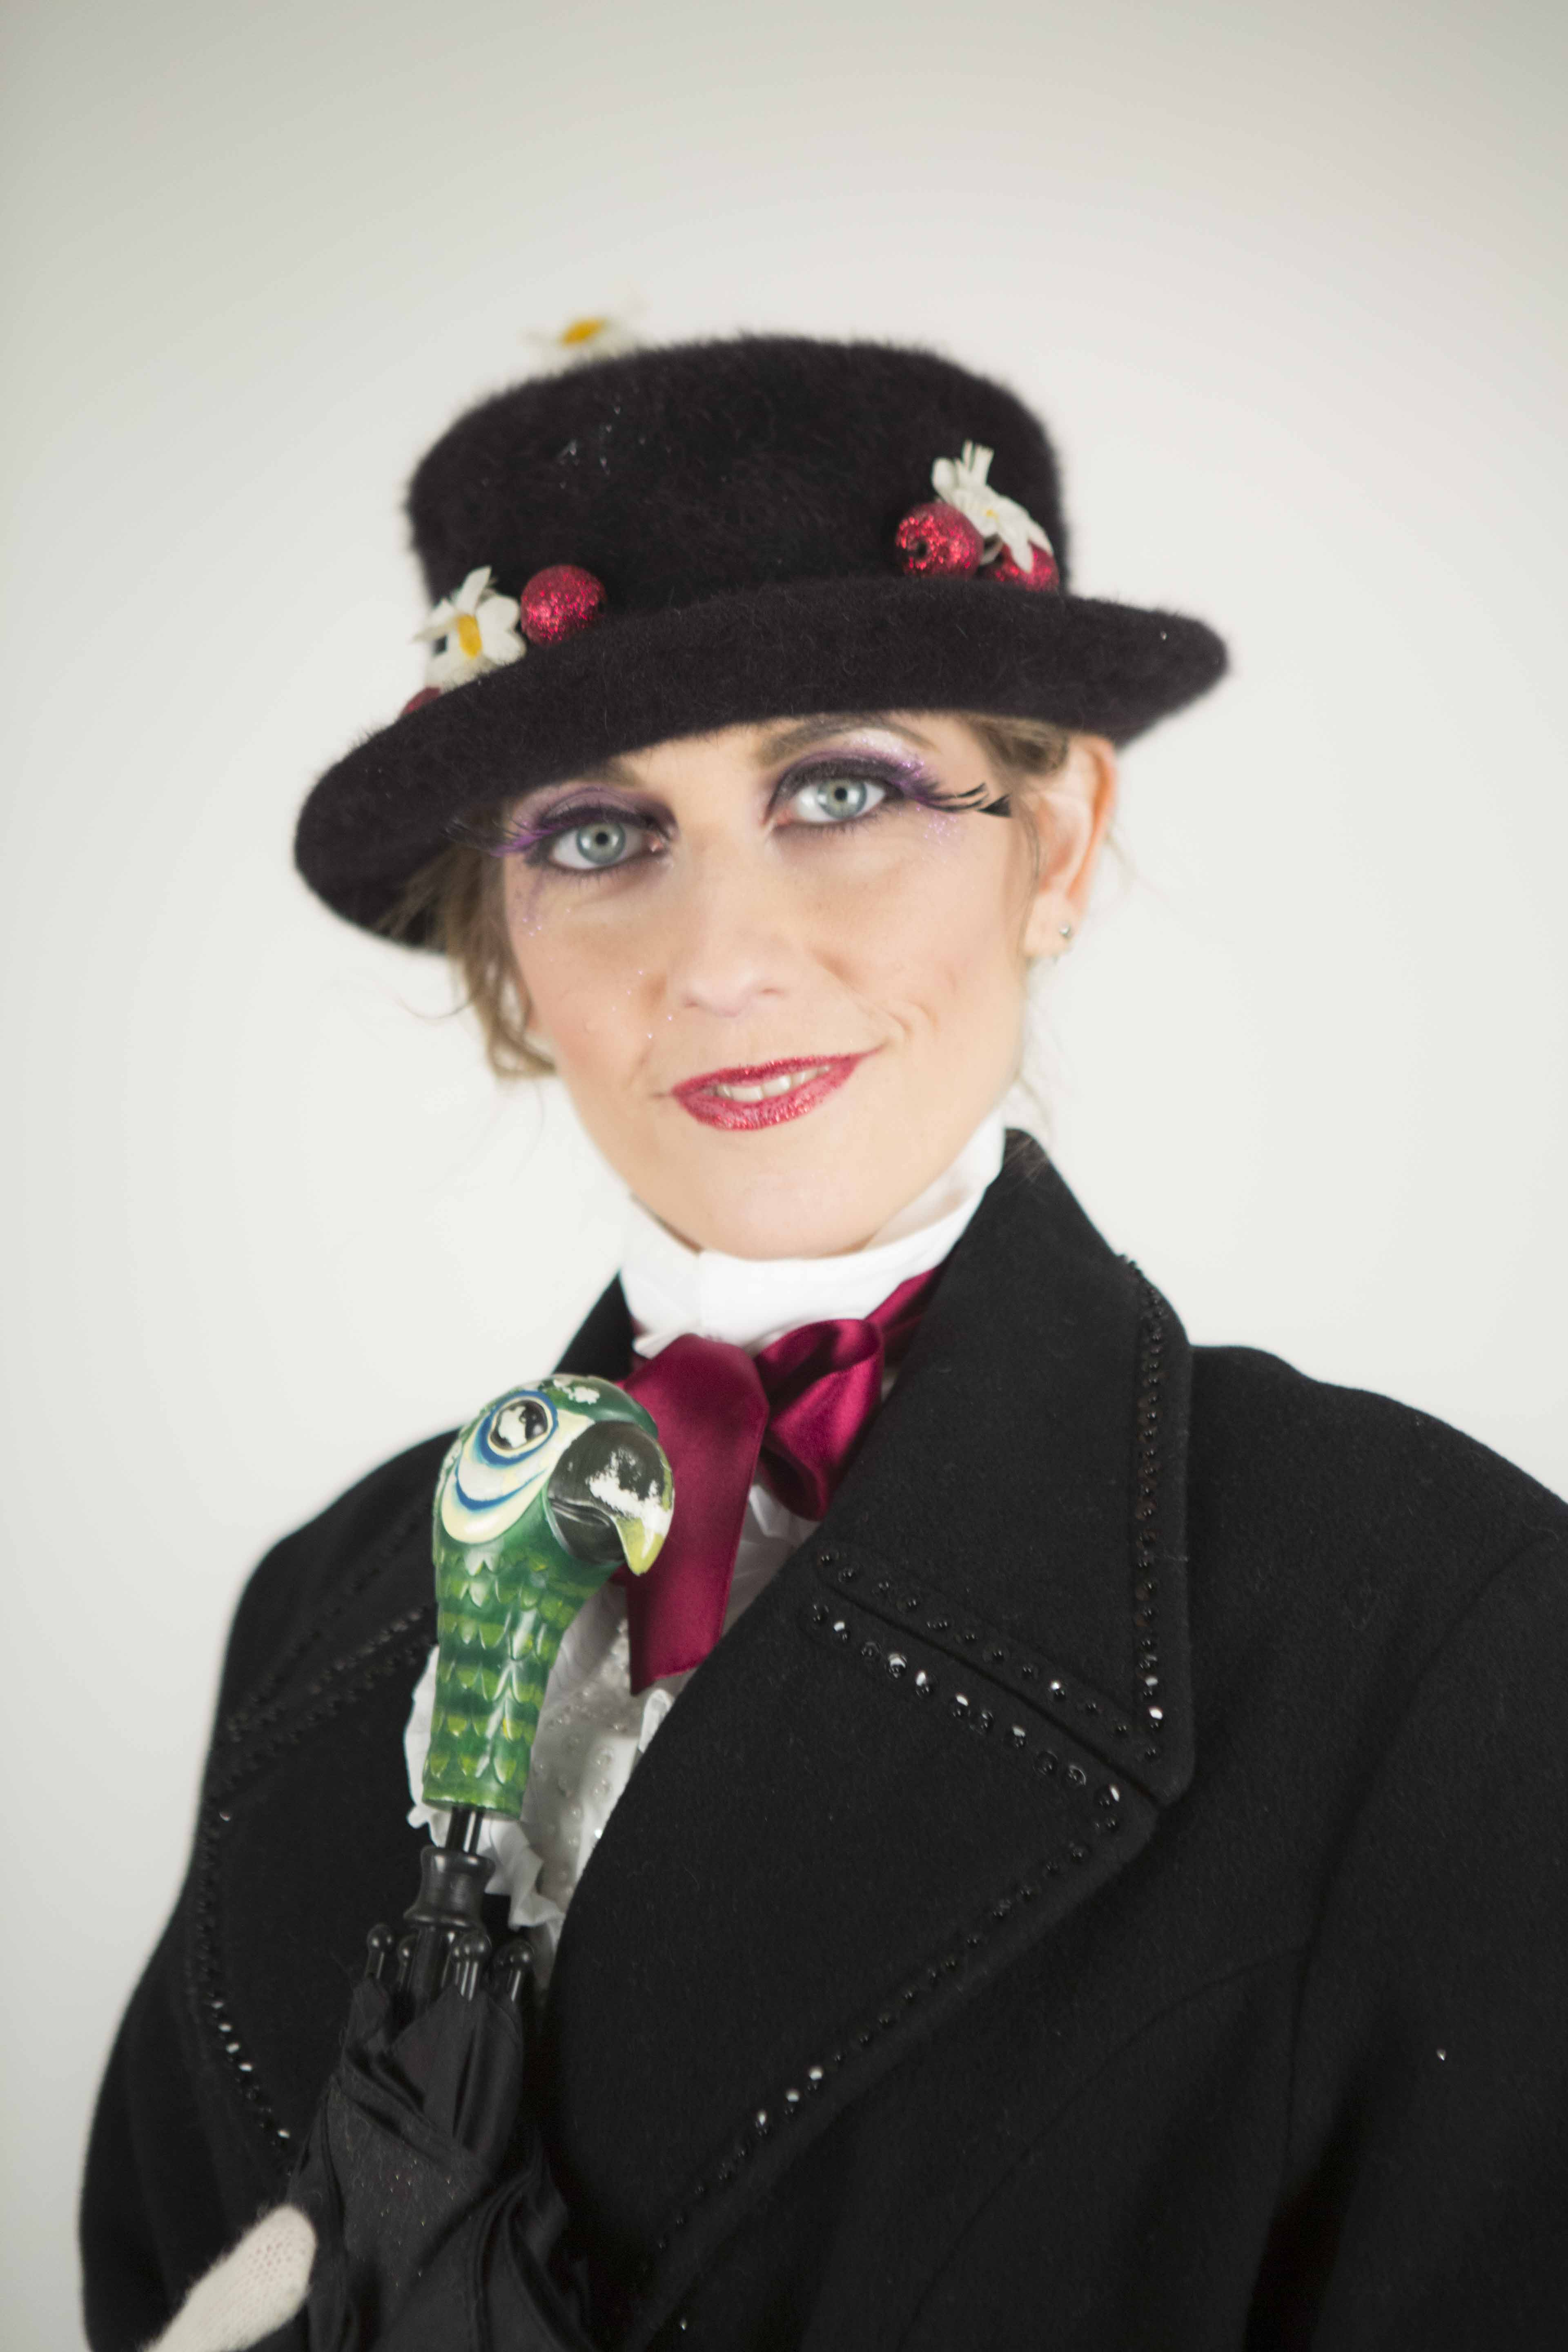 Blondy Violet _The True Story of Mary Poppins - Rights Reserverd: Cecilia Pratizzoli